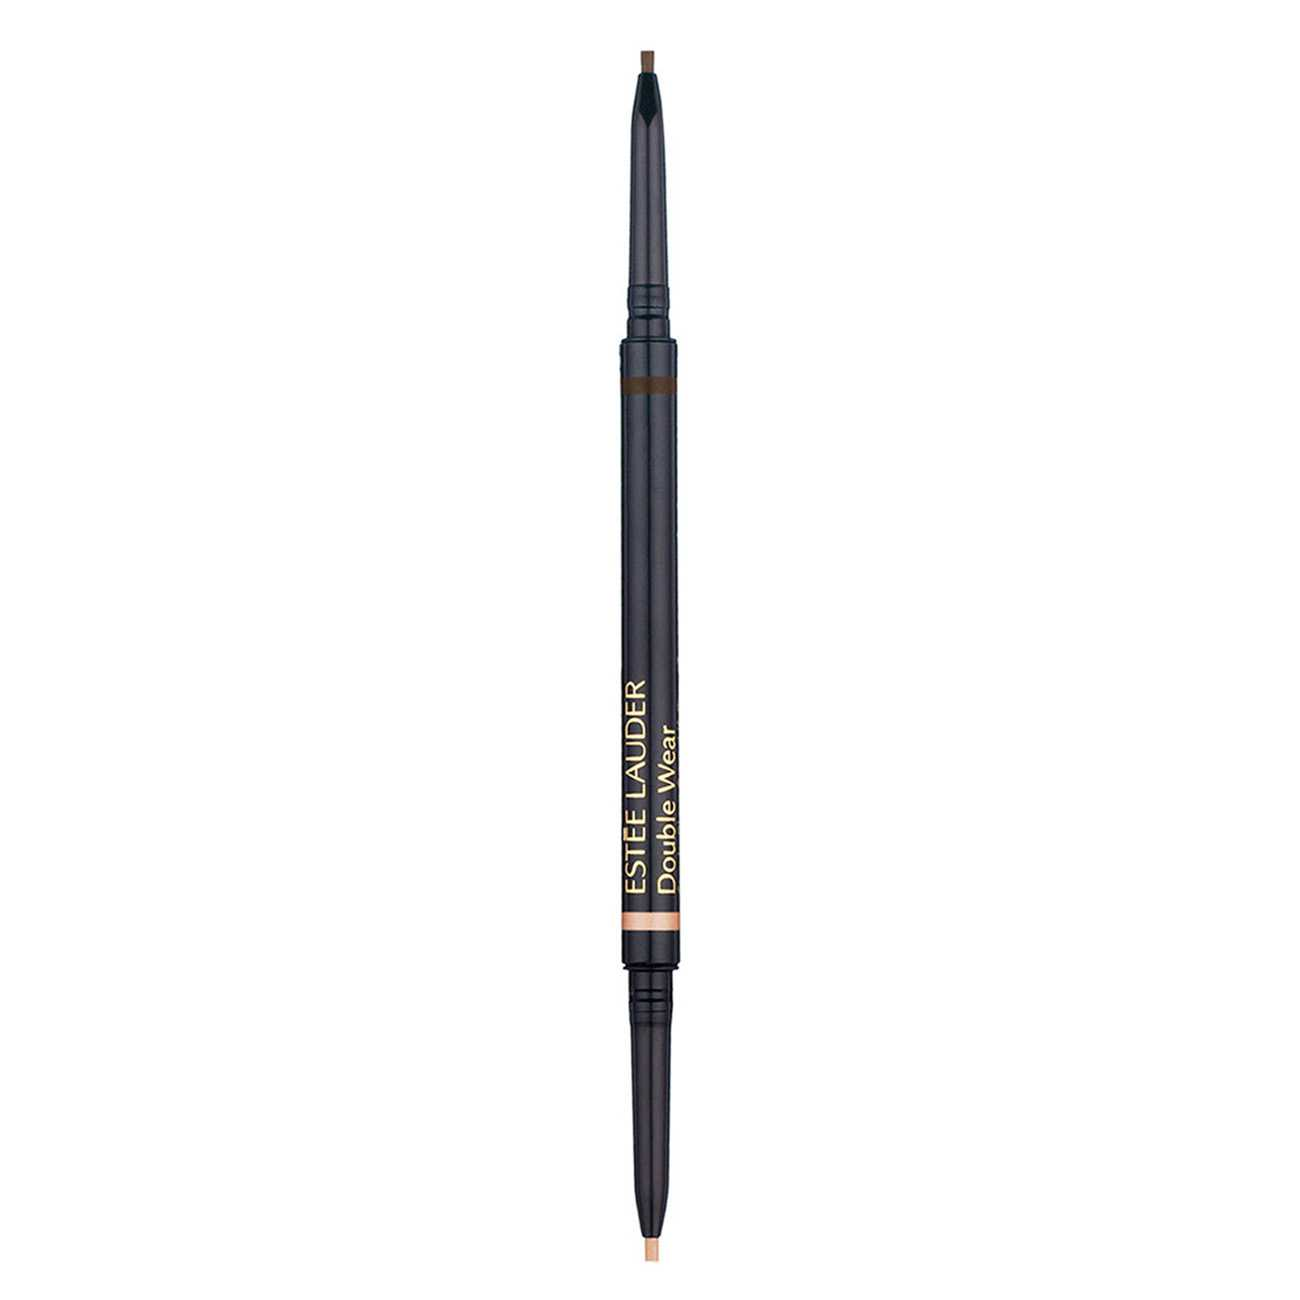 DOUBLE WEAR STAY-IN-PLACE BROW LIFT DUO 0.9 ML Black Brown 1 imagine produs